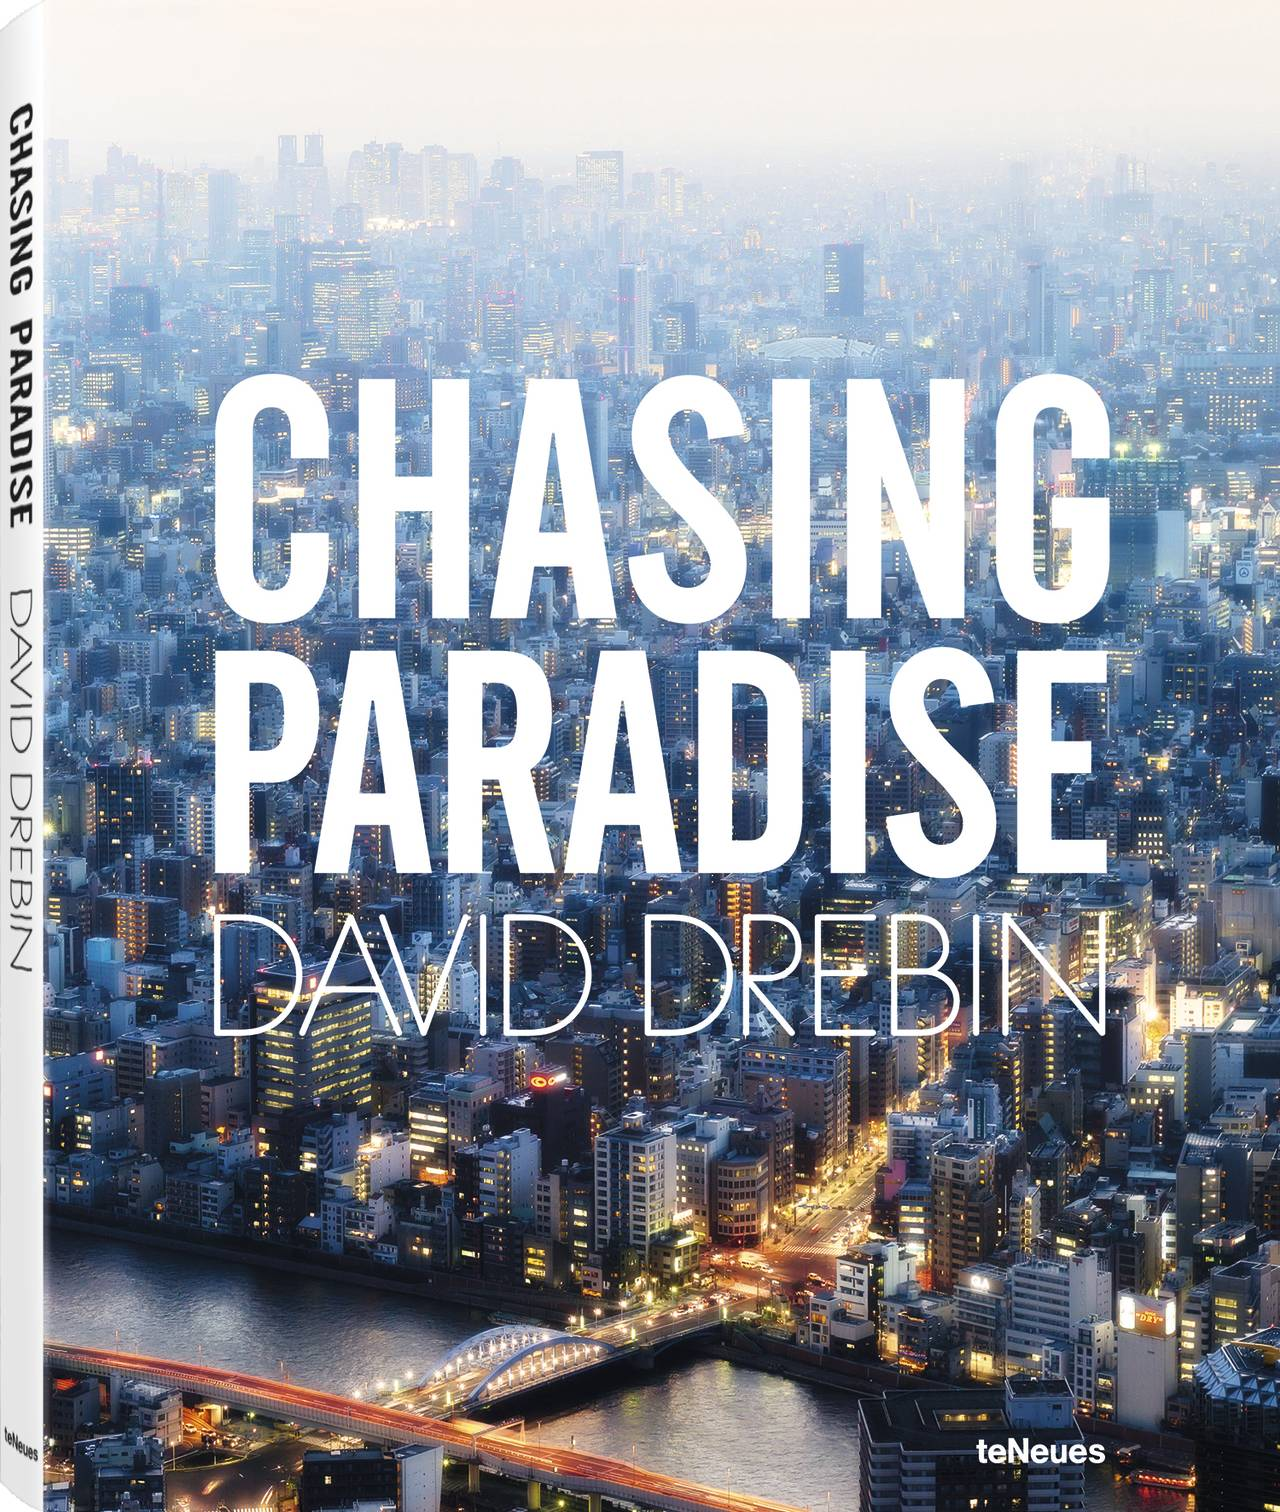 © Chasing Paradise by David Drebin, published by teNeues, www.teneues.com. Tokyo Nights, 2015, Photo © 2015 David Drebin. All rights reserved.